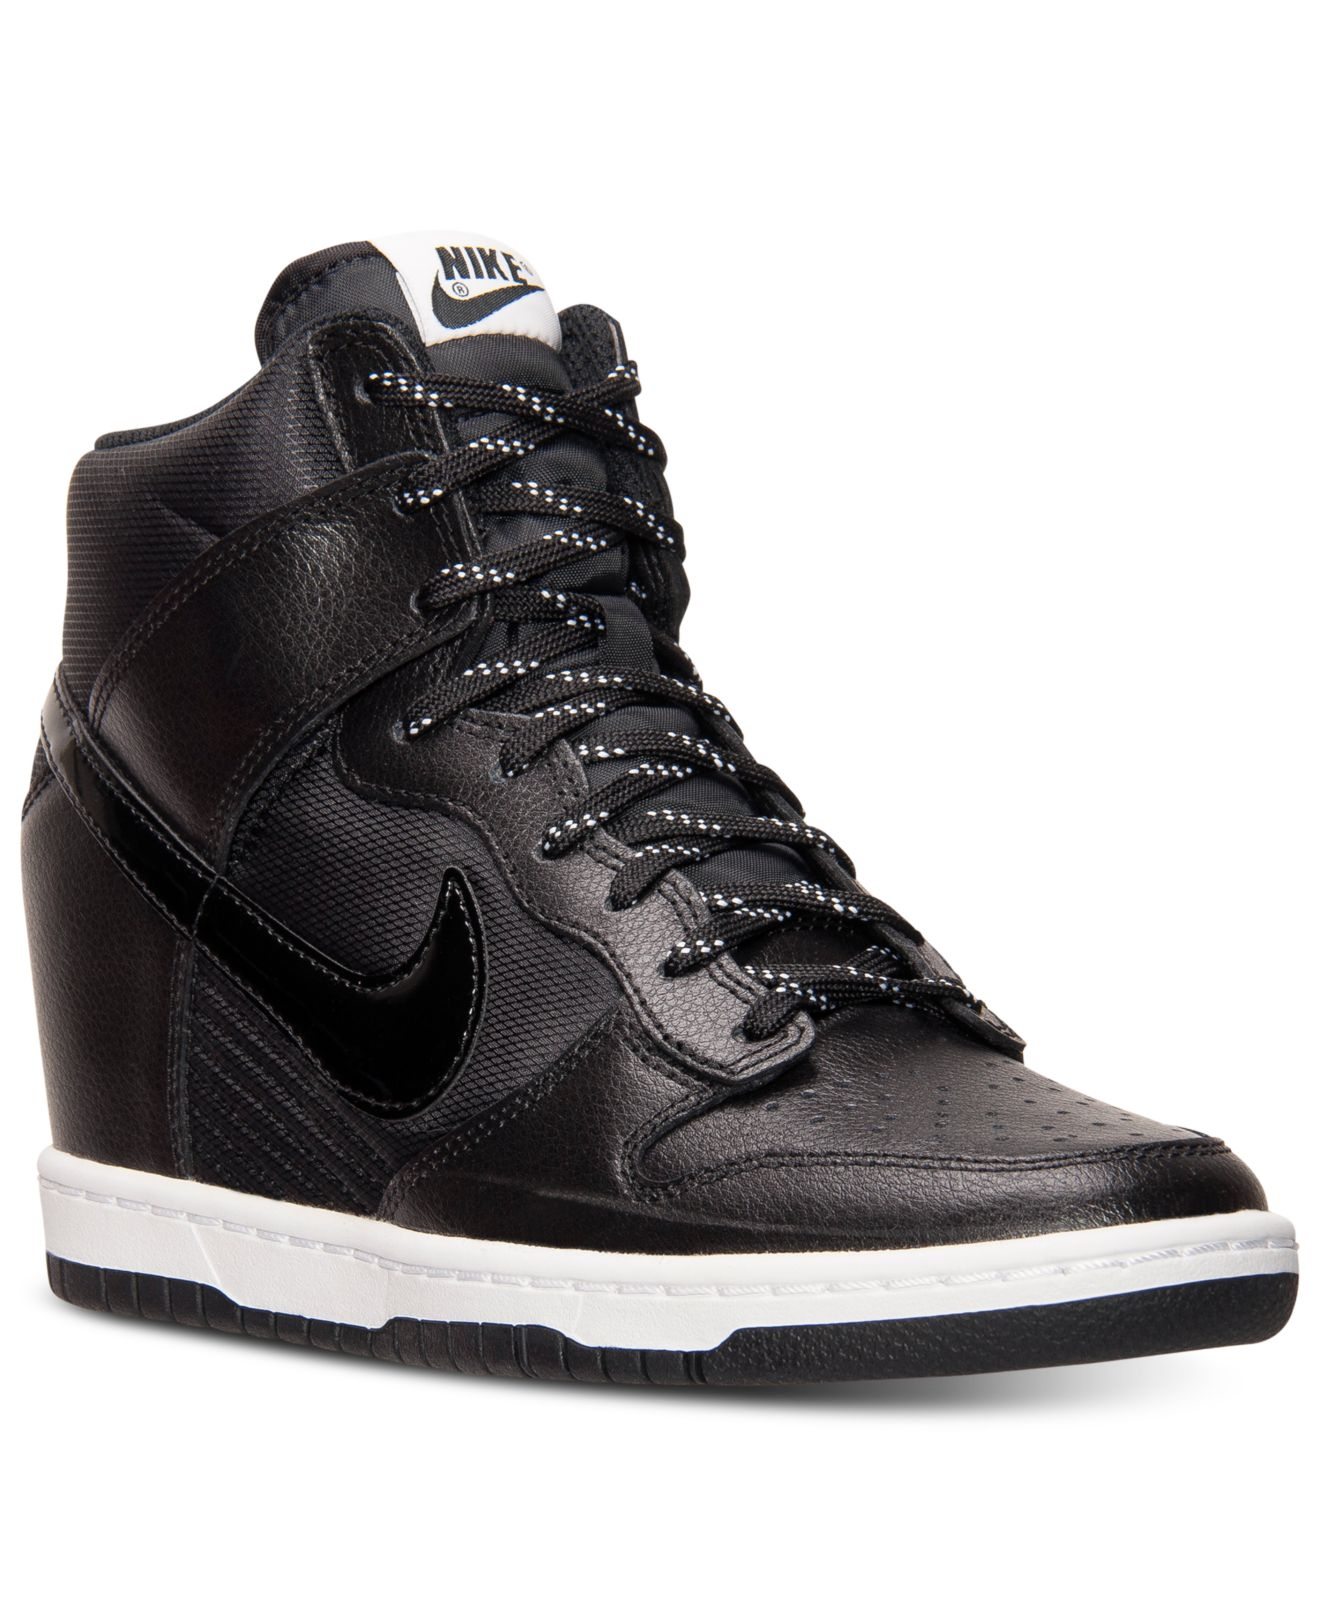 nike women 39 s dunk sky hi essential sneakers from finish line in black lyst. Black Bedroom Furniture Sets. Home Design Ideas